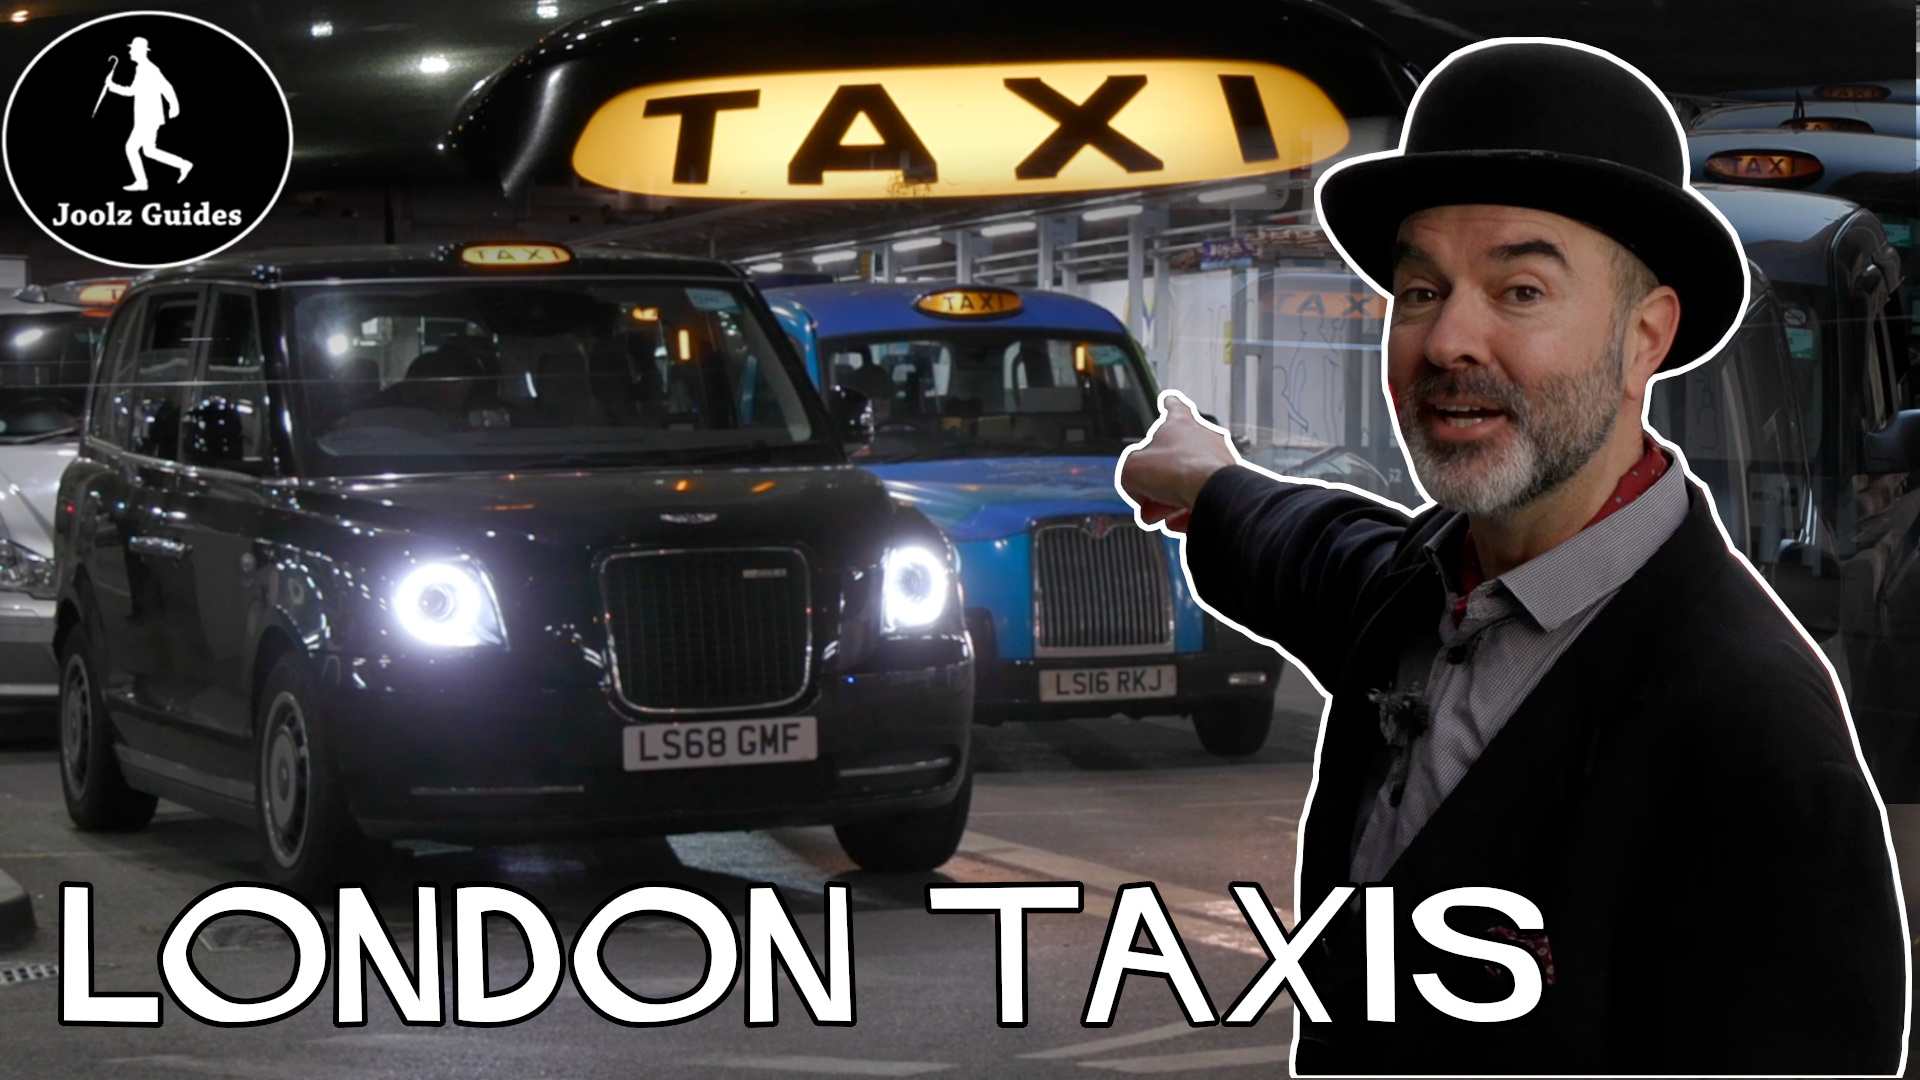 London Cabbies